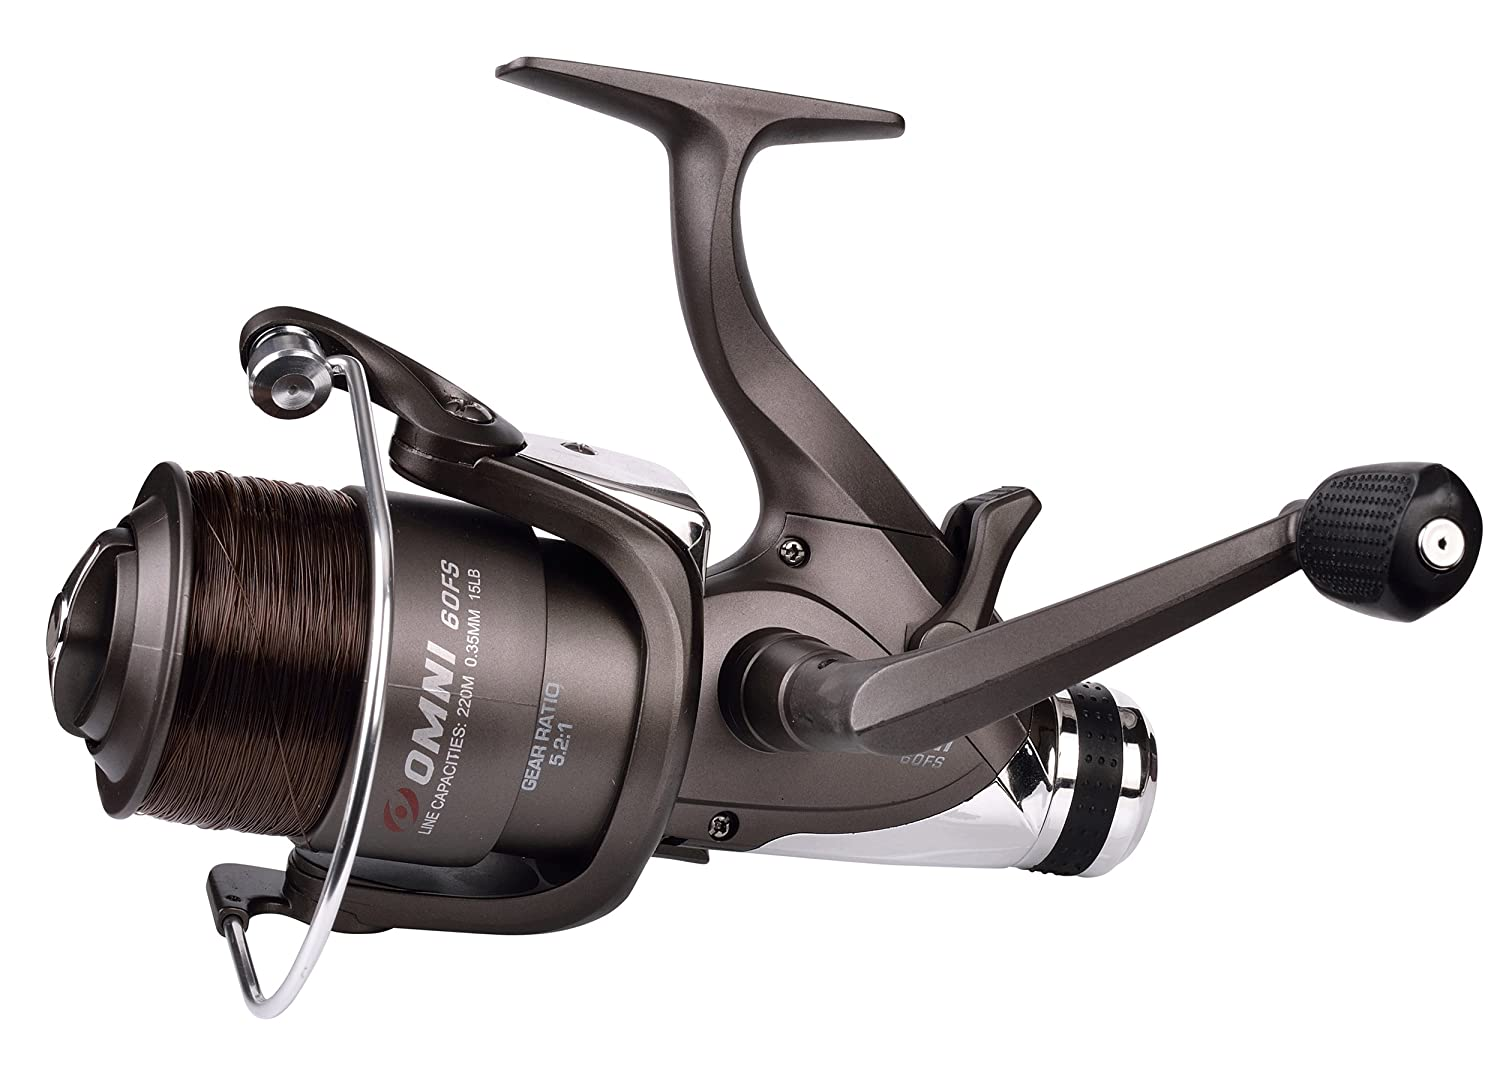 *NEW* Shakespeare Omni Freespool/Baitrunner Reel**with Free Line**Sizes:30+40+60 Carp Pike Coarse Game Fishing